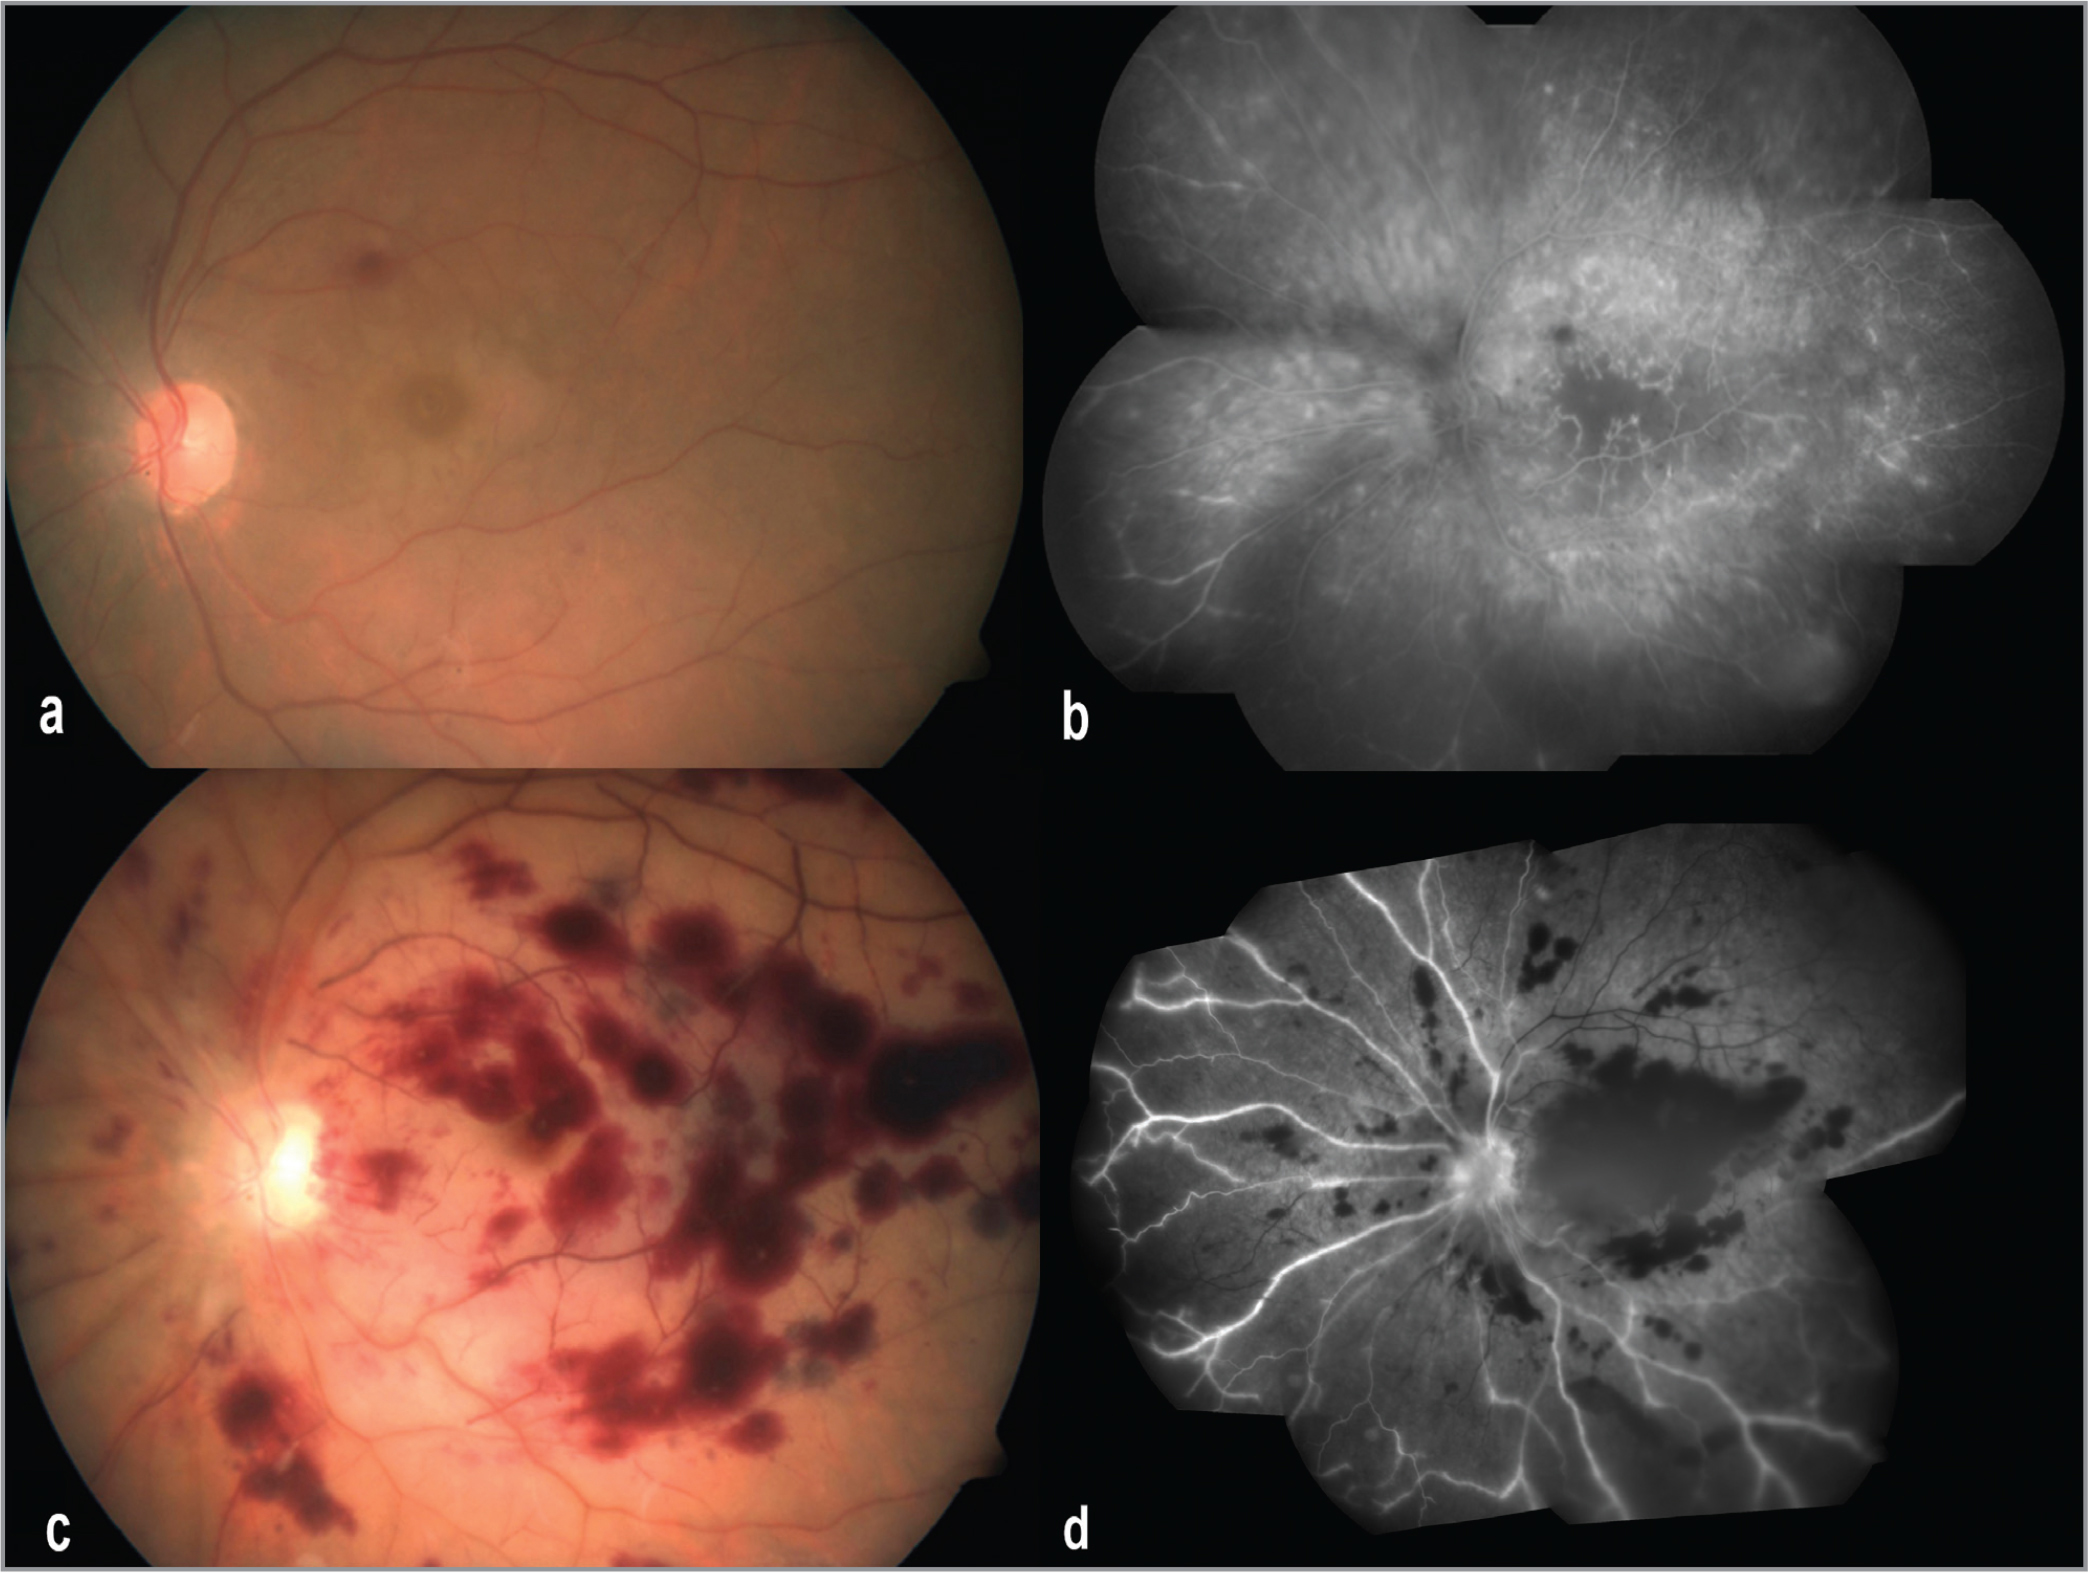 Color fundus photograph of the left eye macula shows retinal whitening, intraretinal hemorrhages (a), retinal ischemia, and perivascular hyperfluorescence (b) in the early phase of gentamicin toxicity (12 hours). The unremitting infarction on day 4 shows profound retinal necrosis (c) and marked ischemia (d).